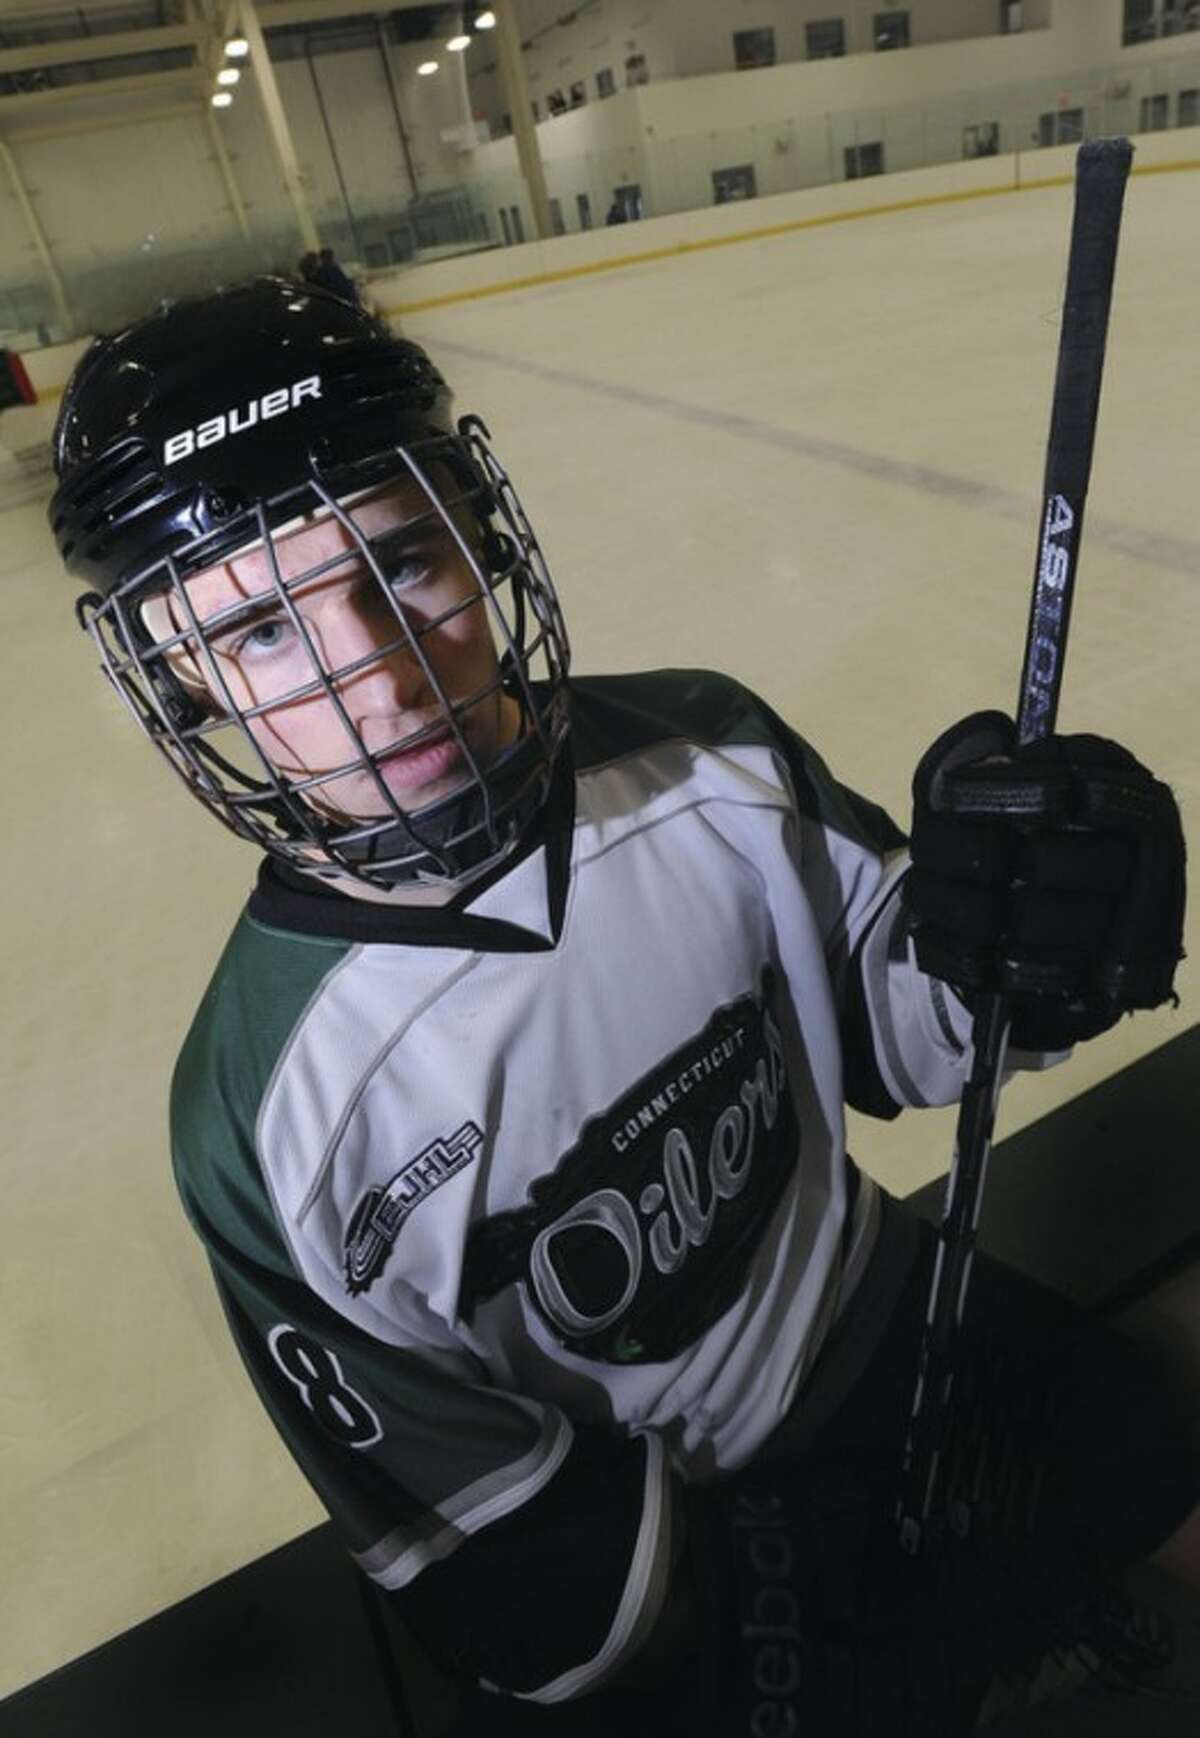 Hour photo/Matthew Vinci Roman Pfennings is the newest member of the Connecticut Oilers Eastern Junior Hockey League squad.